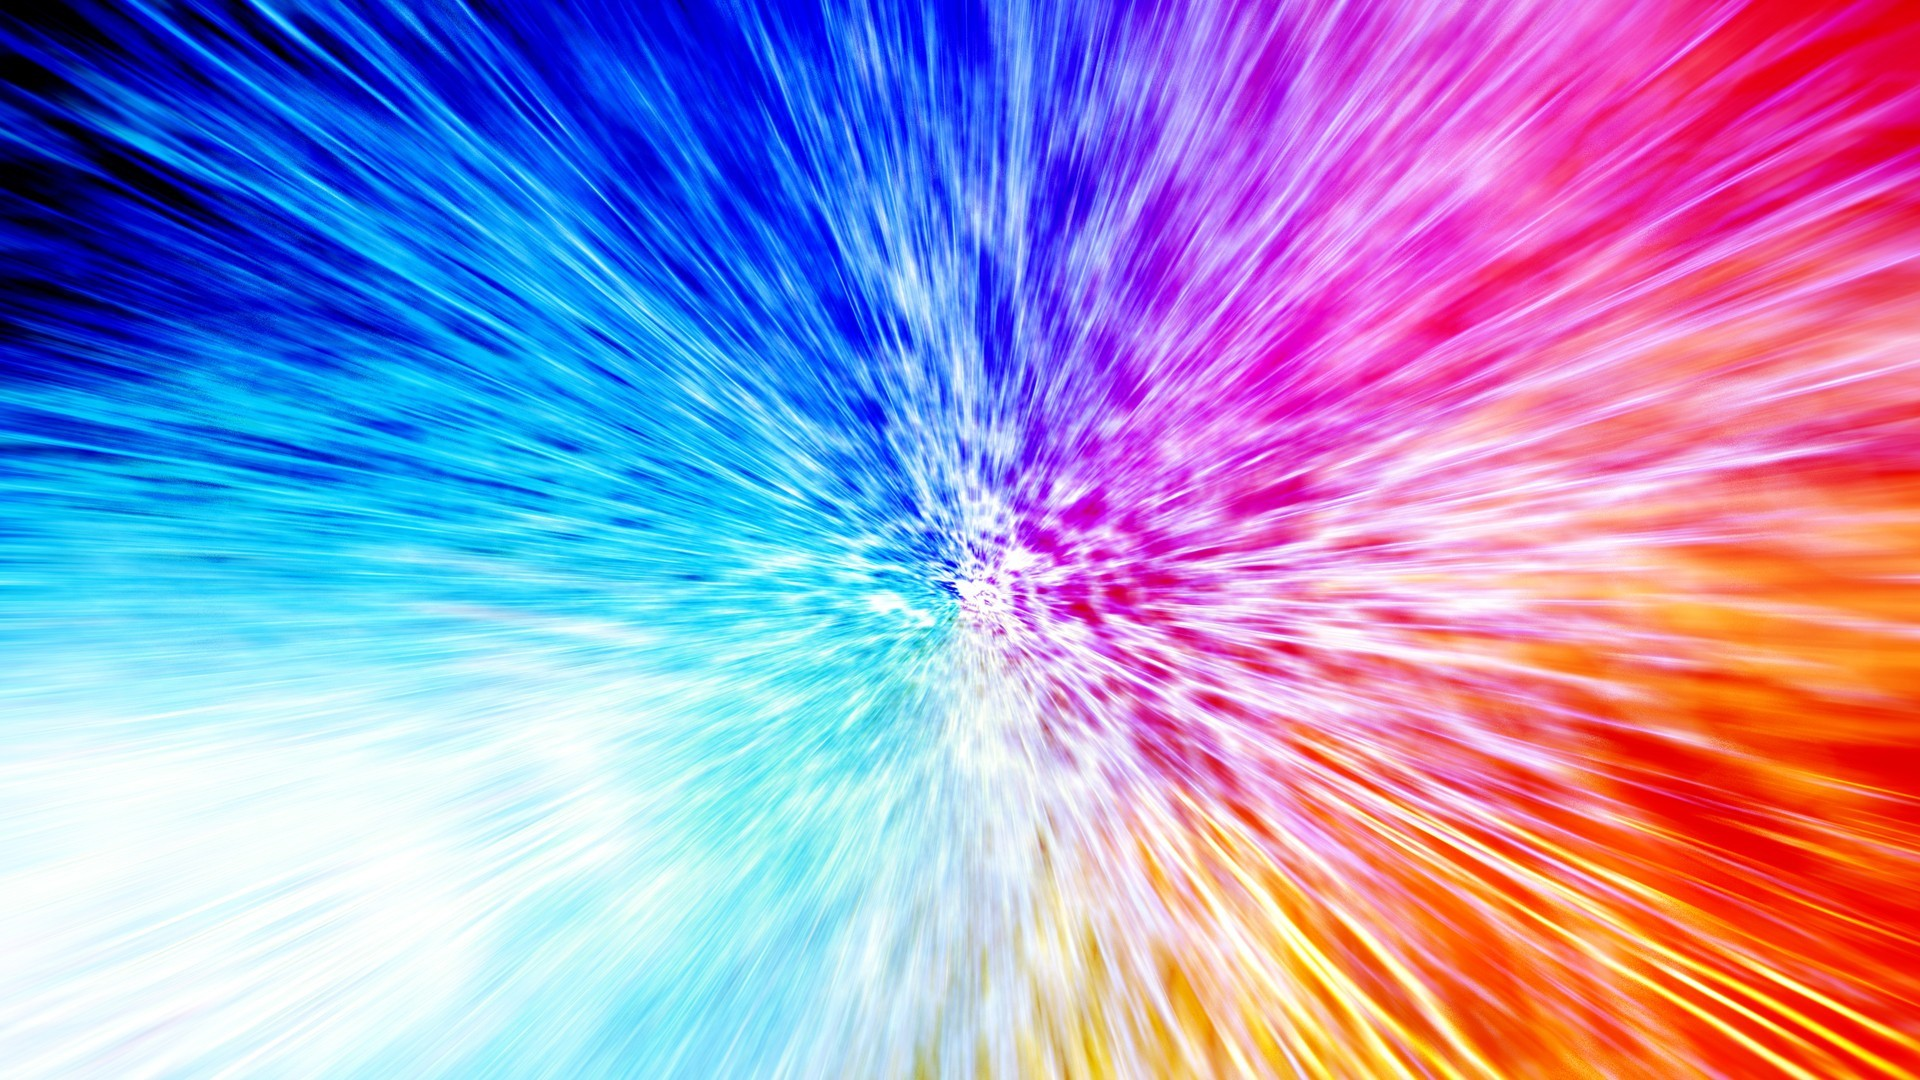 Most Viewed Free Ipad Wallpapers: 78+ Bright Backgrounds ·① Download Free Amazing Full HD